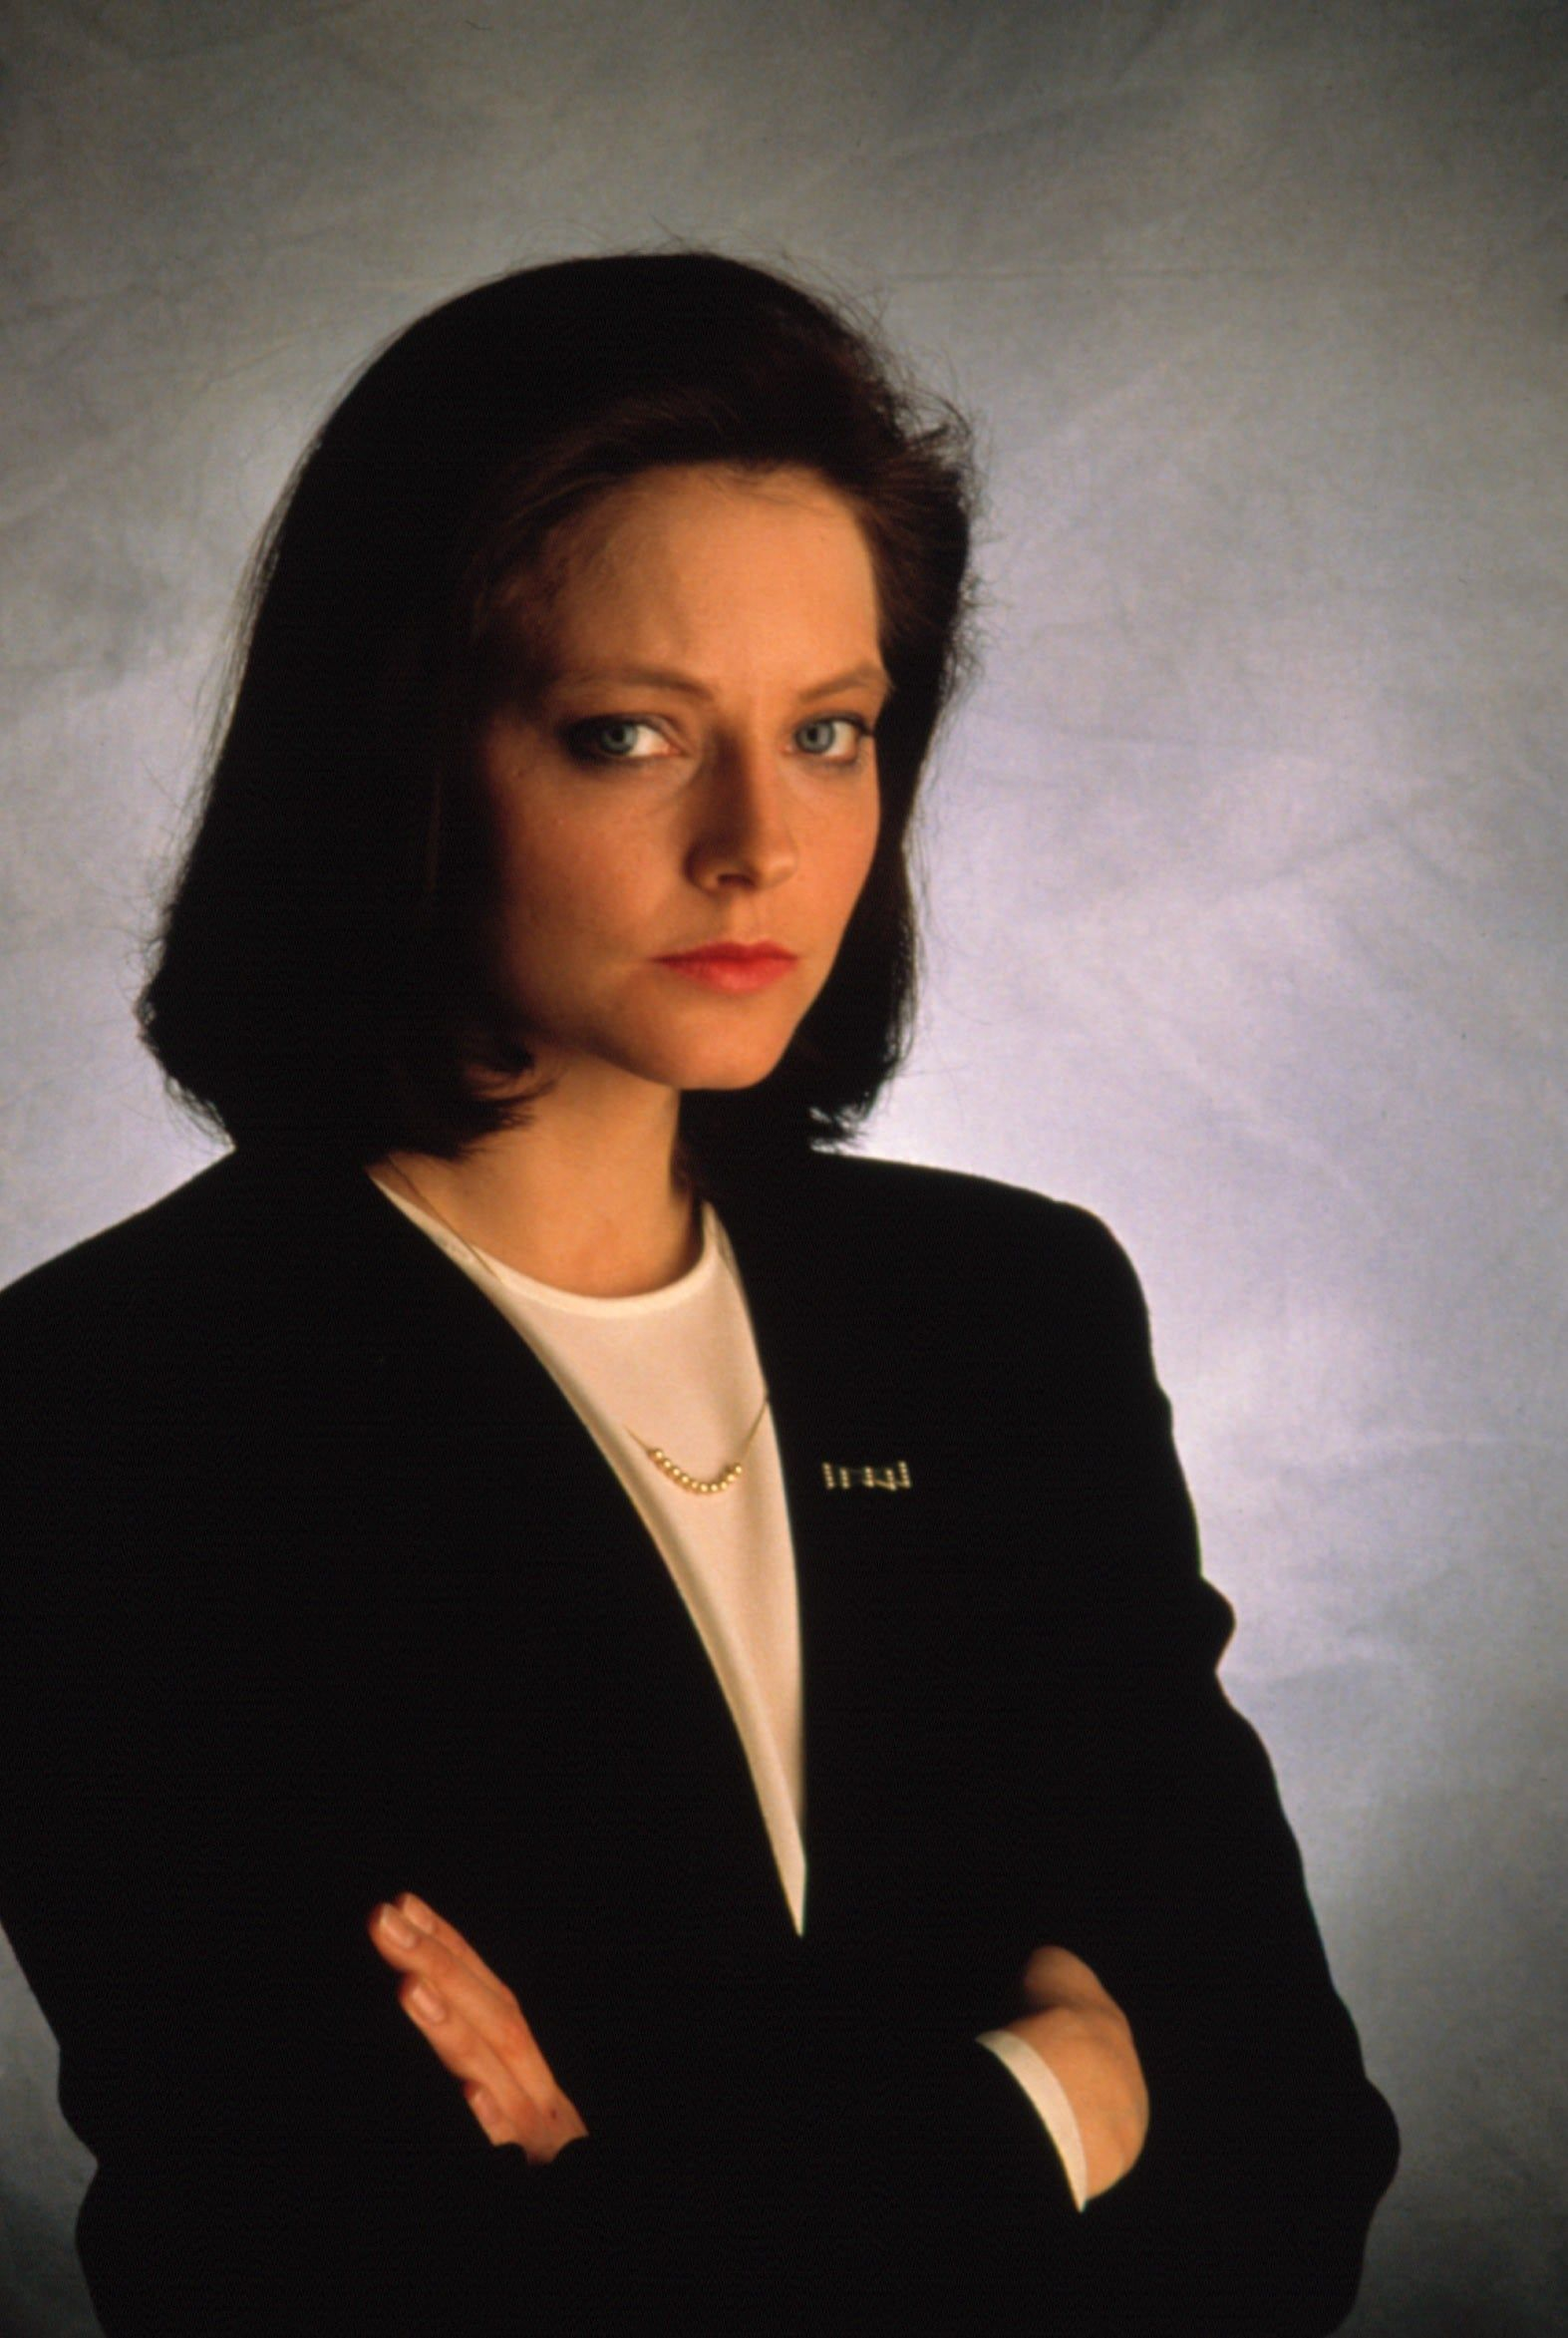 Jodie Foster Jodie foster, Clarice starling, The fosters